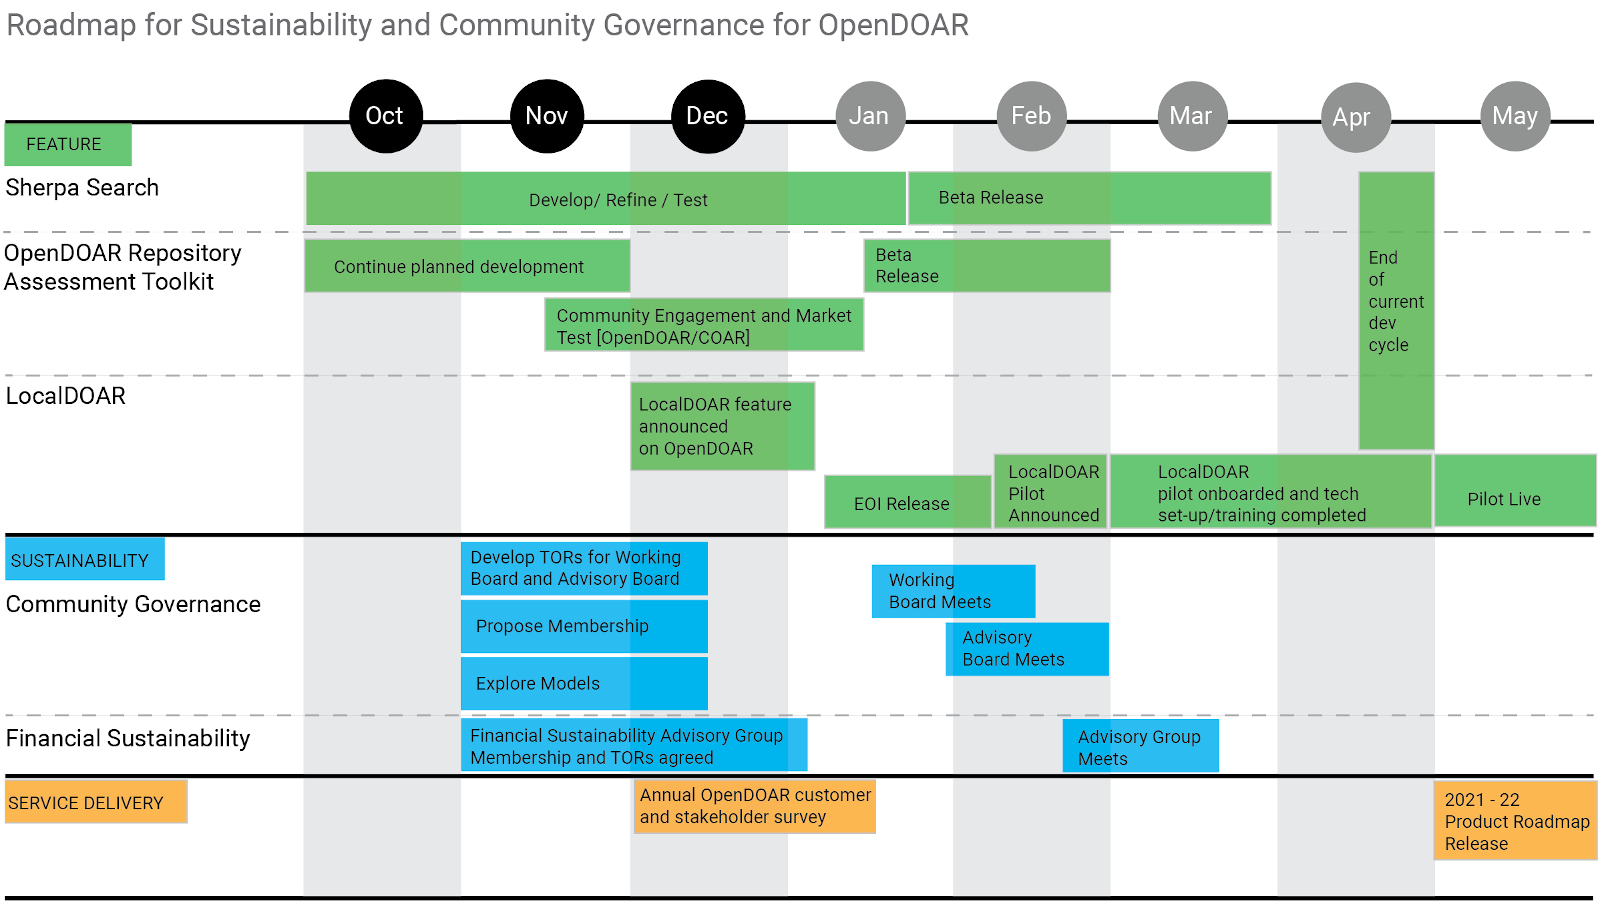 Roadmap for sustainability and community governance for OpenDOAR, including planned features, collaboration, preparations and service delivery.  This covers the period of October 2020 until May 2021.